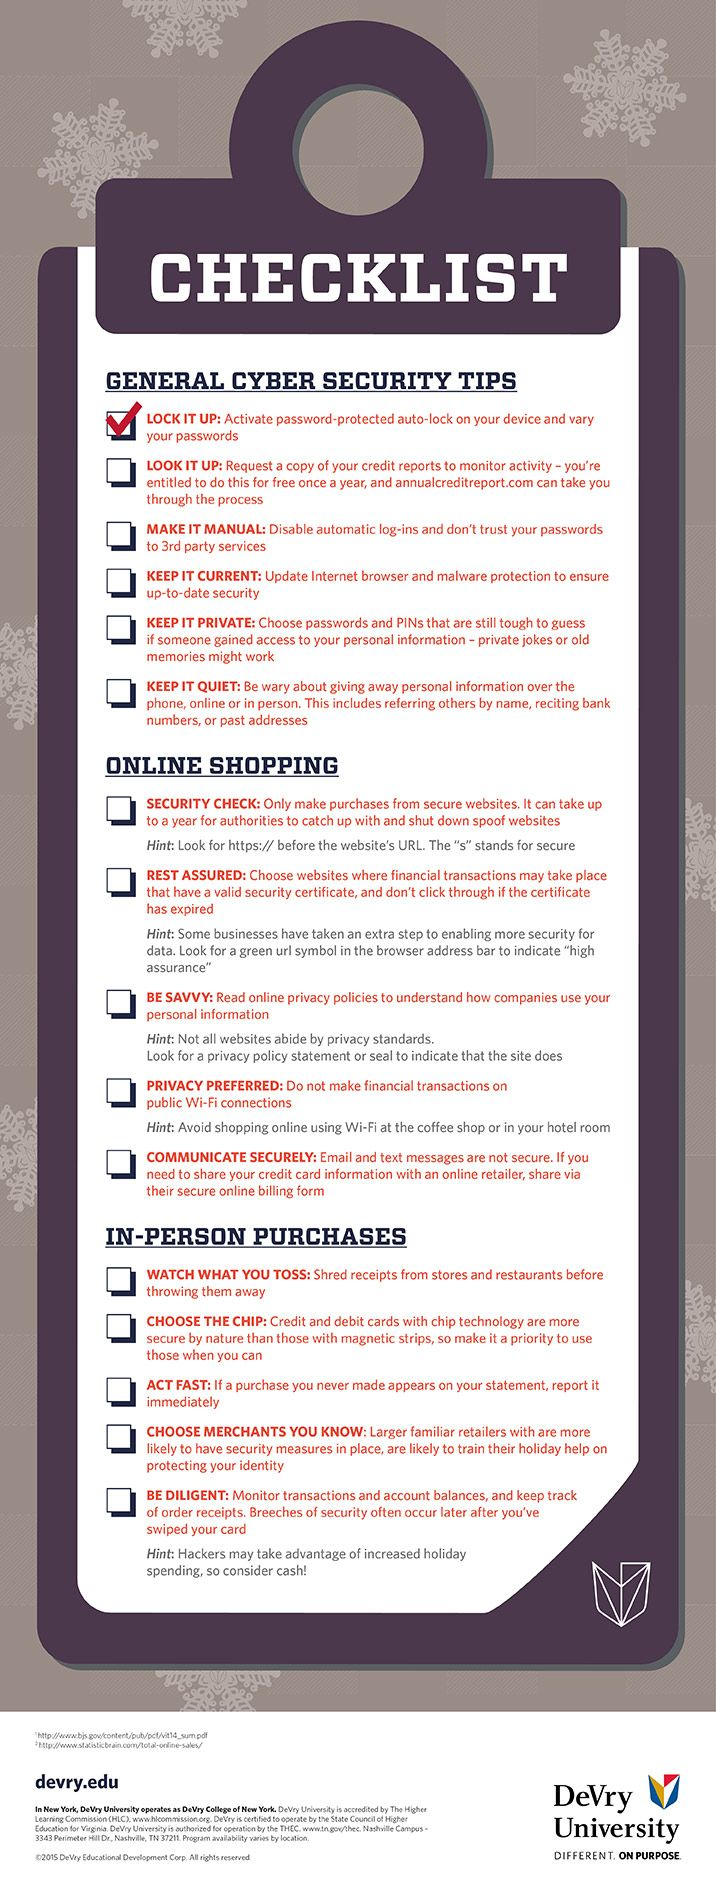 best ideas about identity theft statistics the holiday shopping season approaching follow these cyber security tips to help protect your personal information